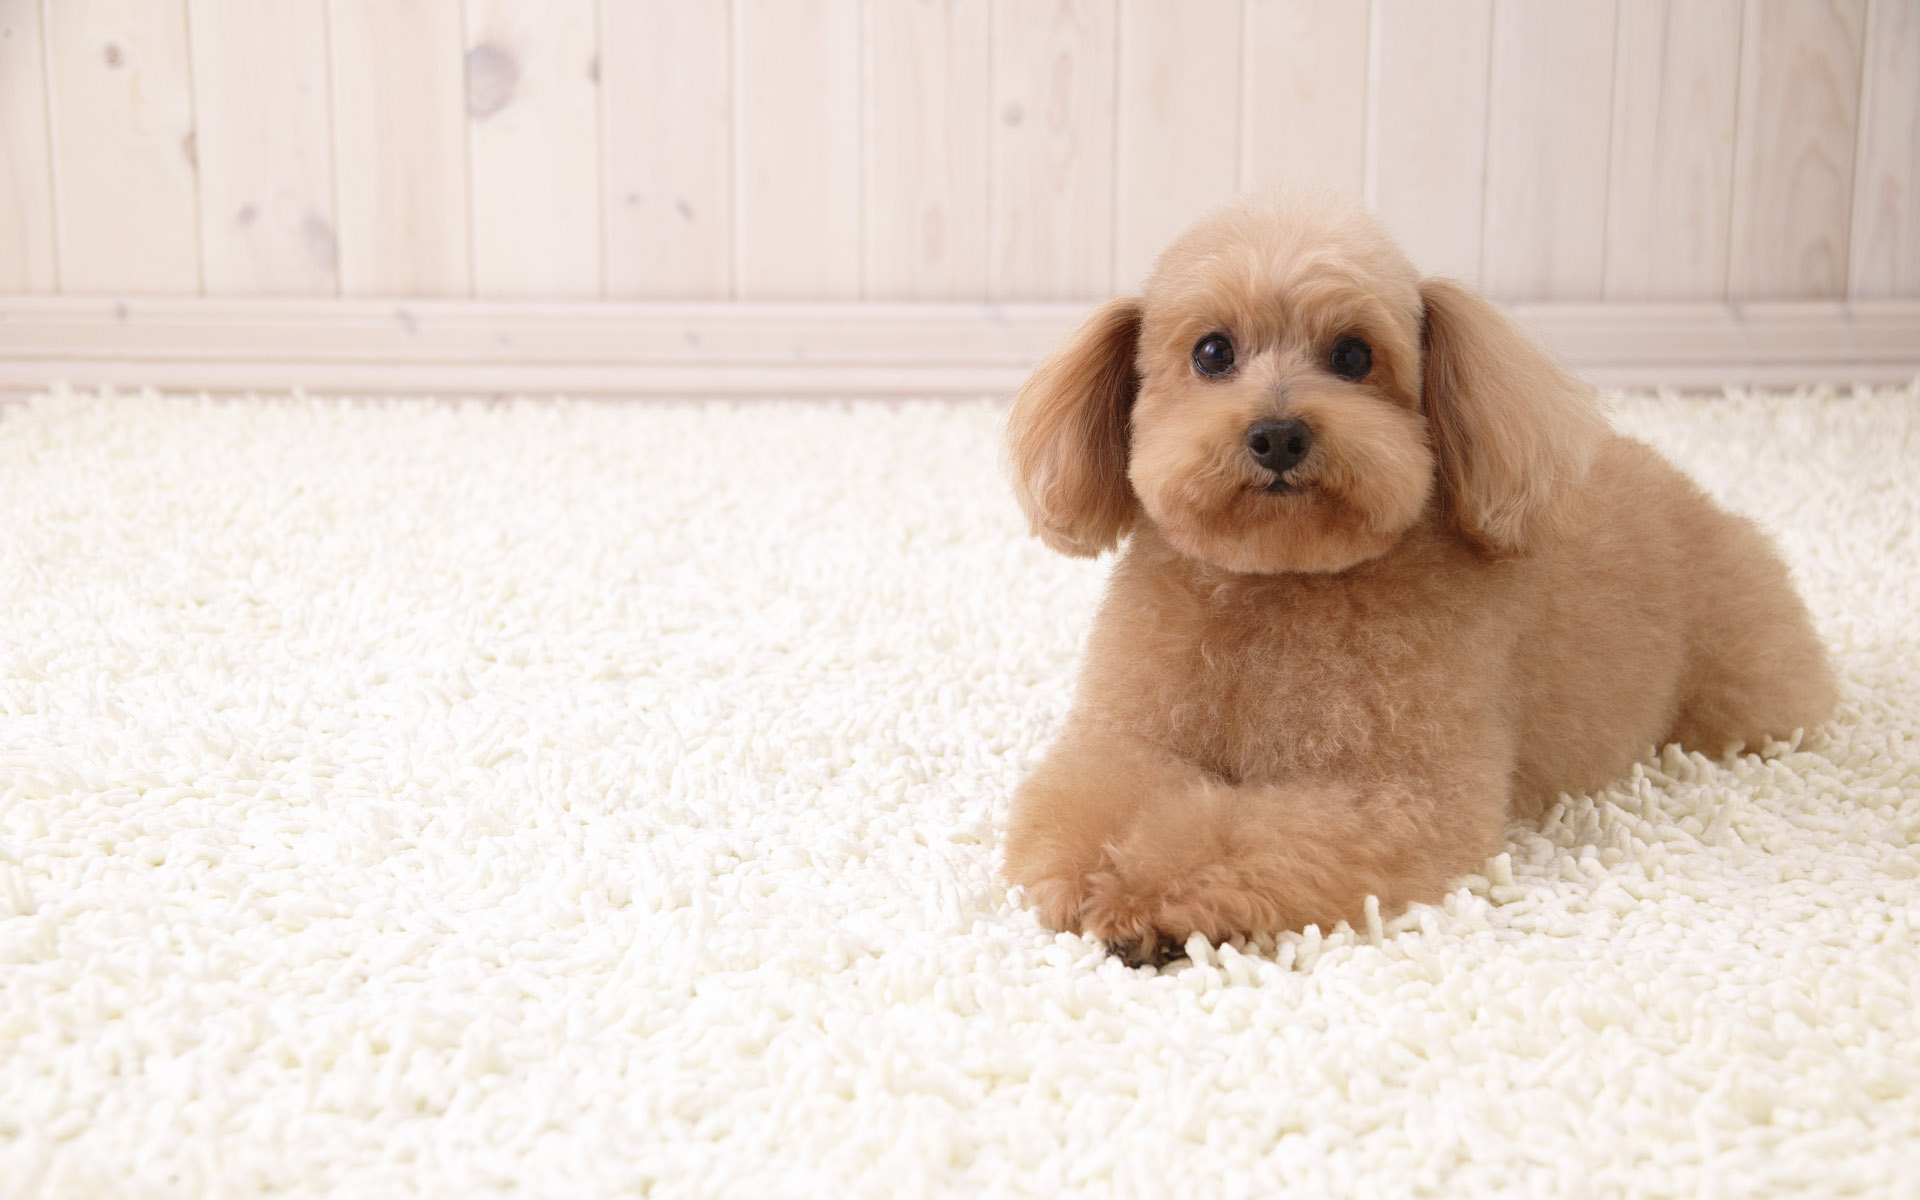 Puppy Dog Wallpapers Puppy Dog Stock Photos